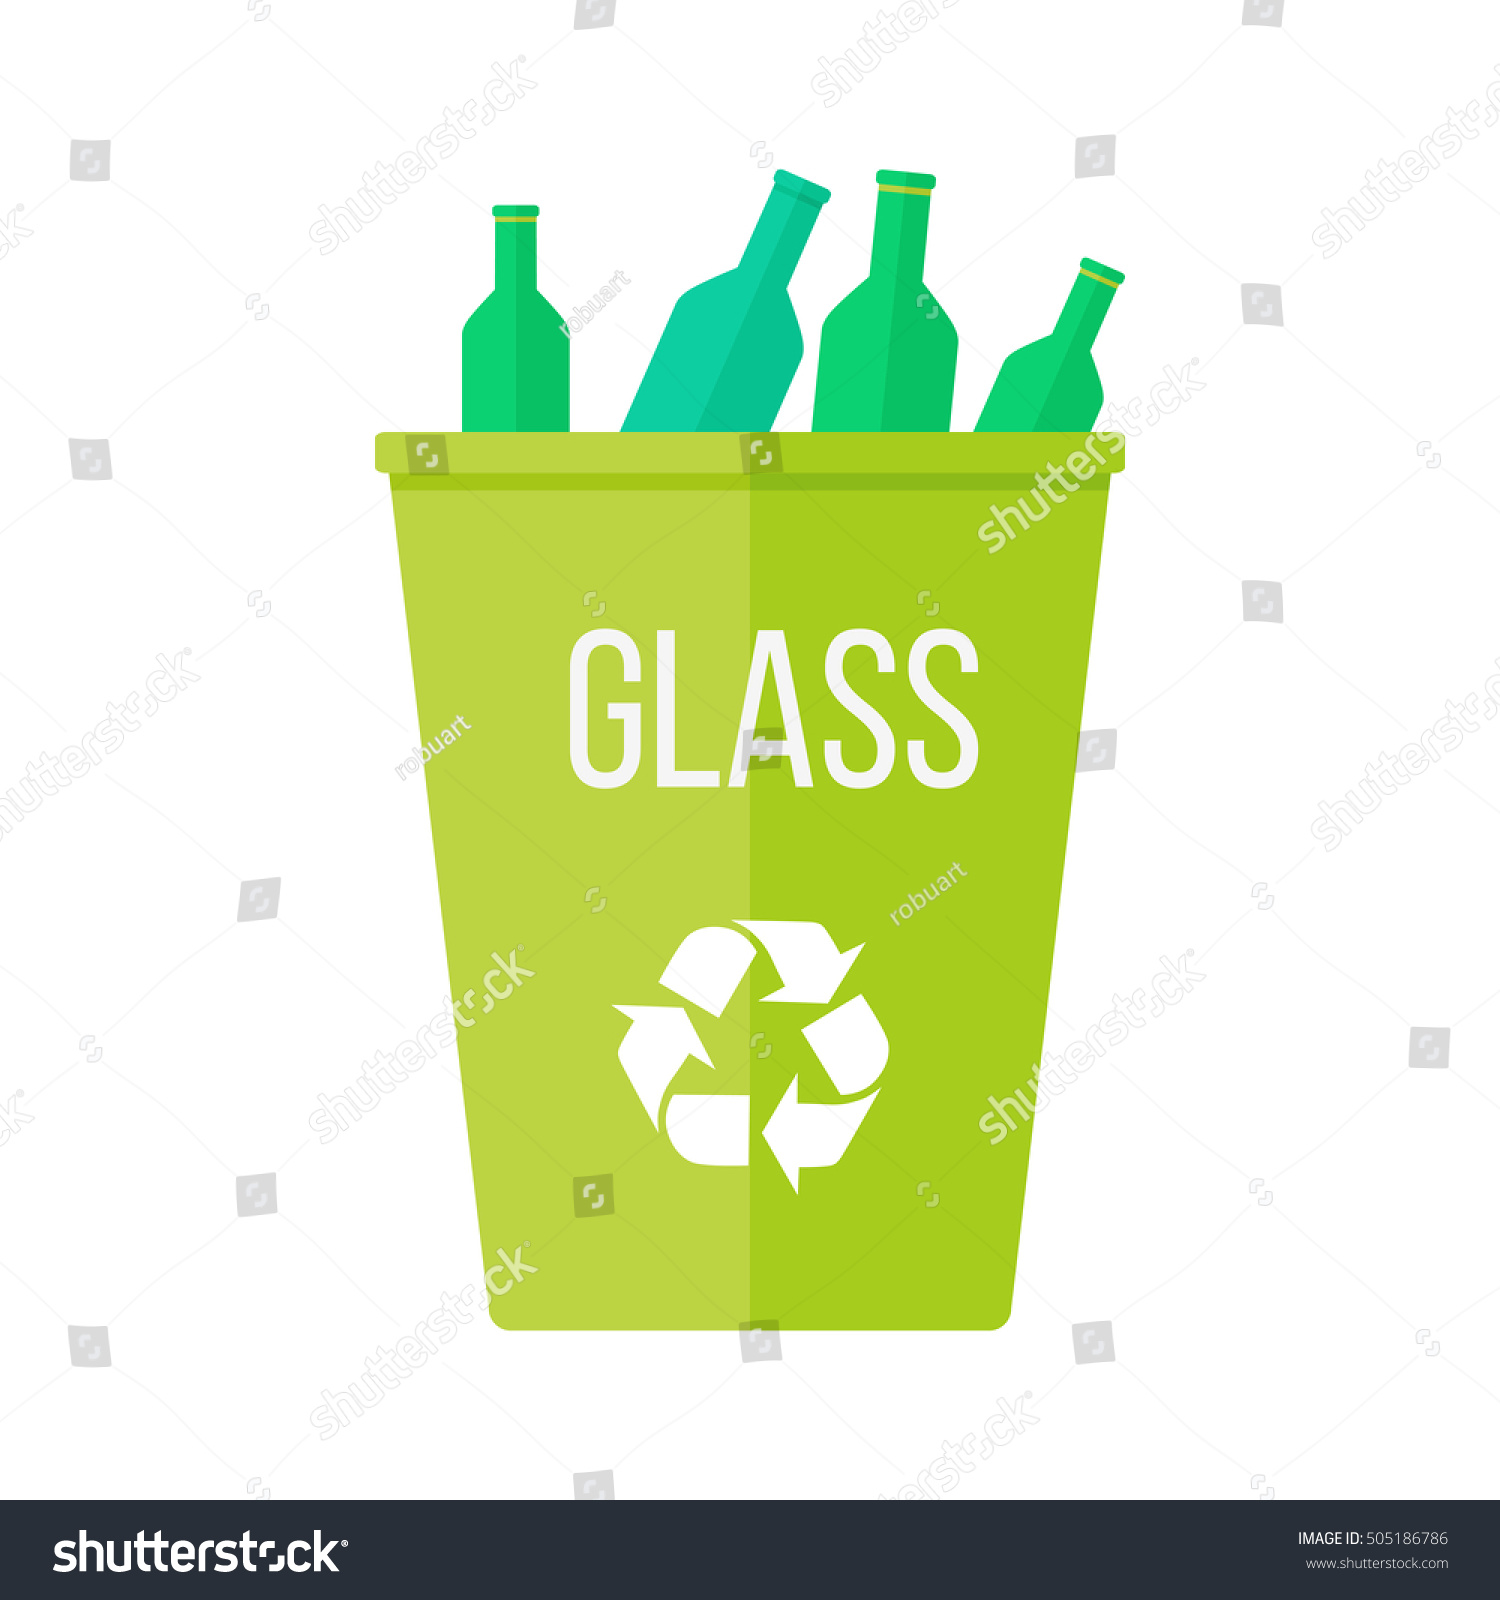 Green recycle garbage bin glass reuse stock illustration for Reuse glass